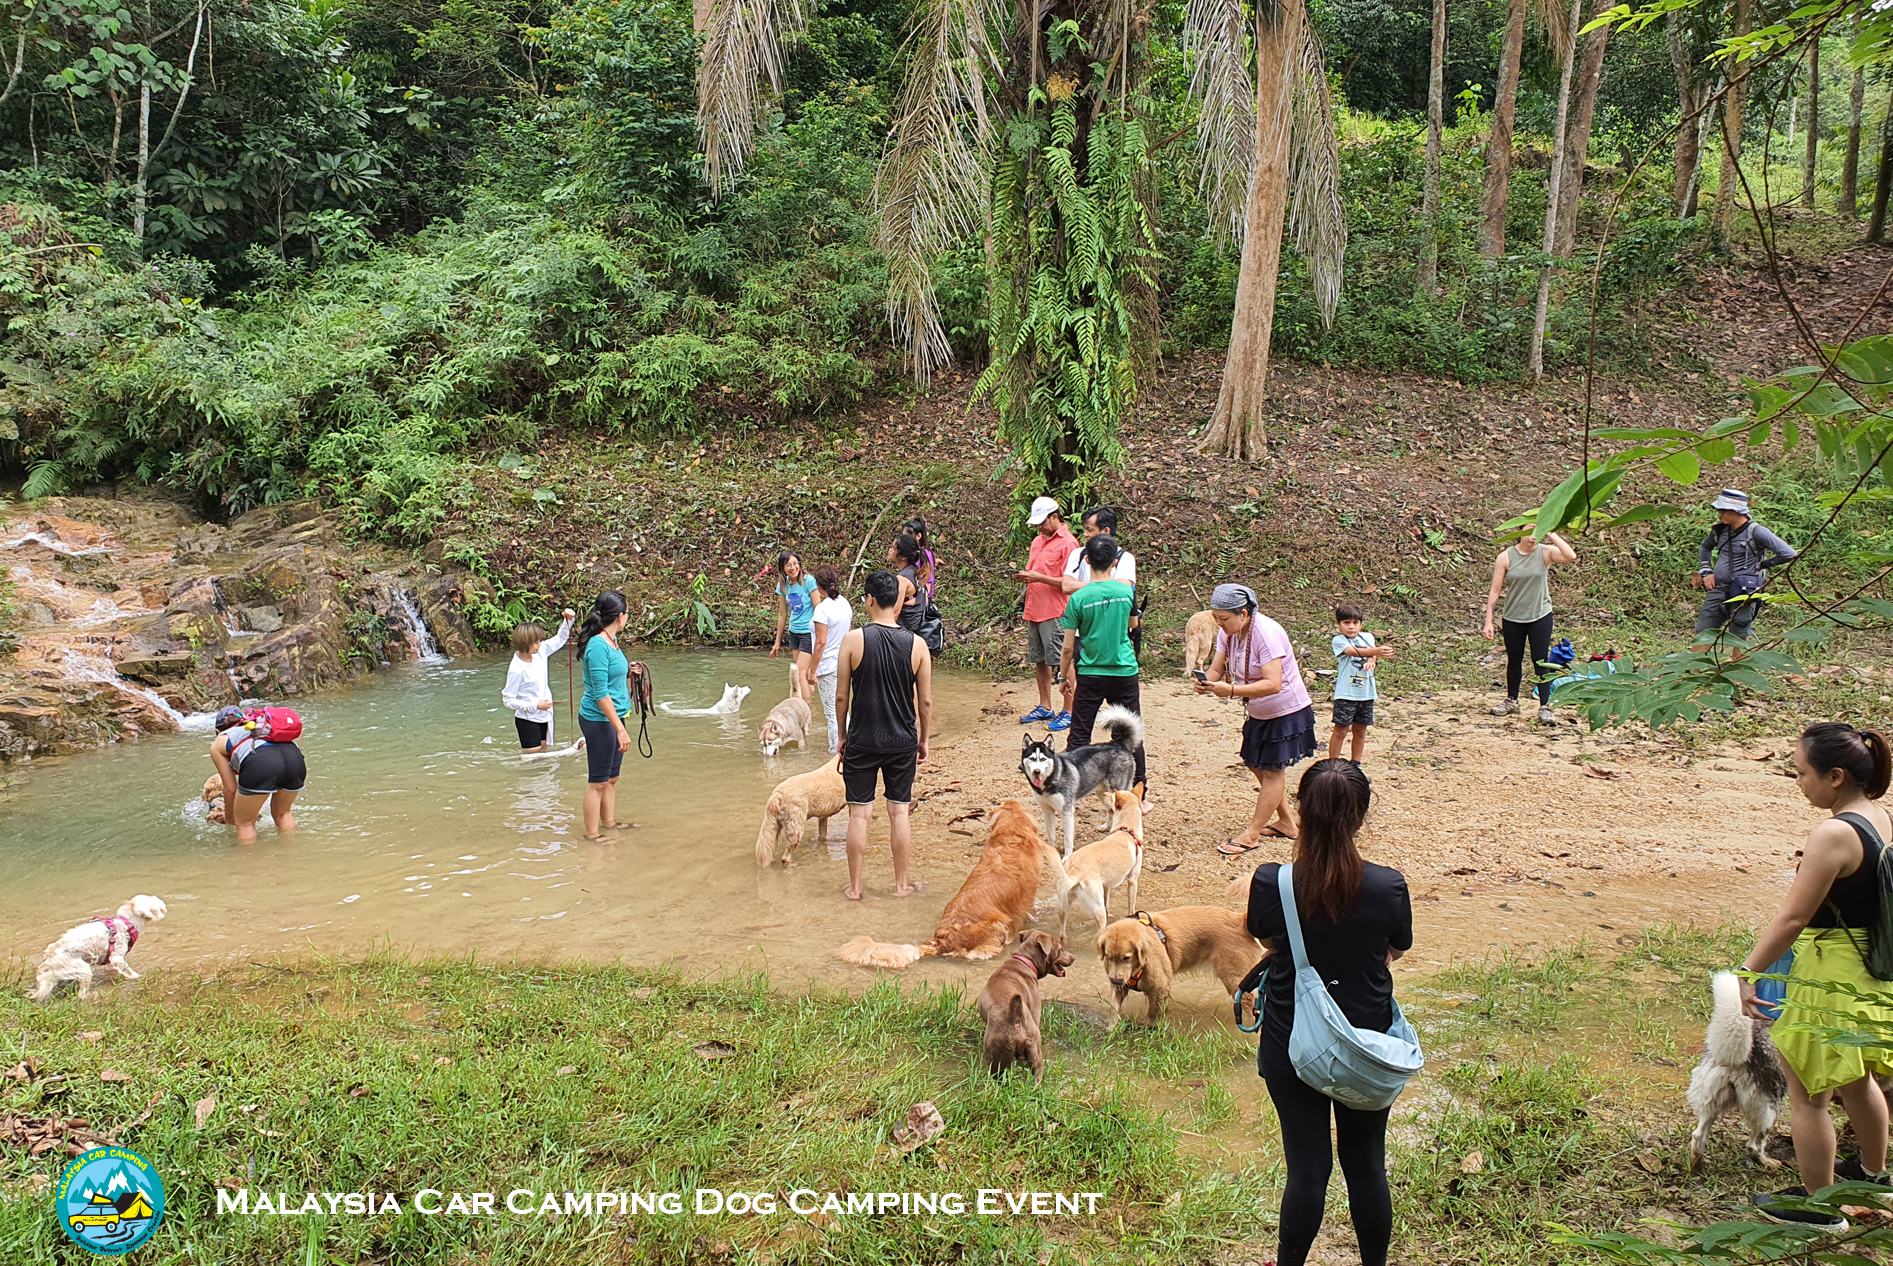 hiking_with_dog_malaysia_dog_camping_event_selangor_camping_site_malaysia_car_camping_private_event_organizer-3